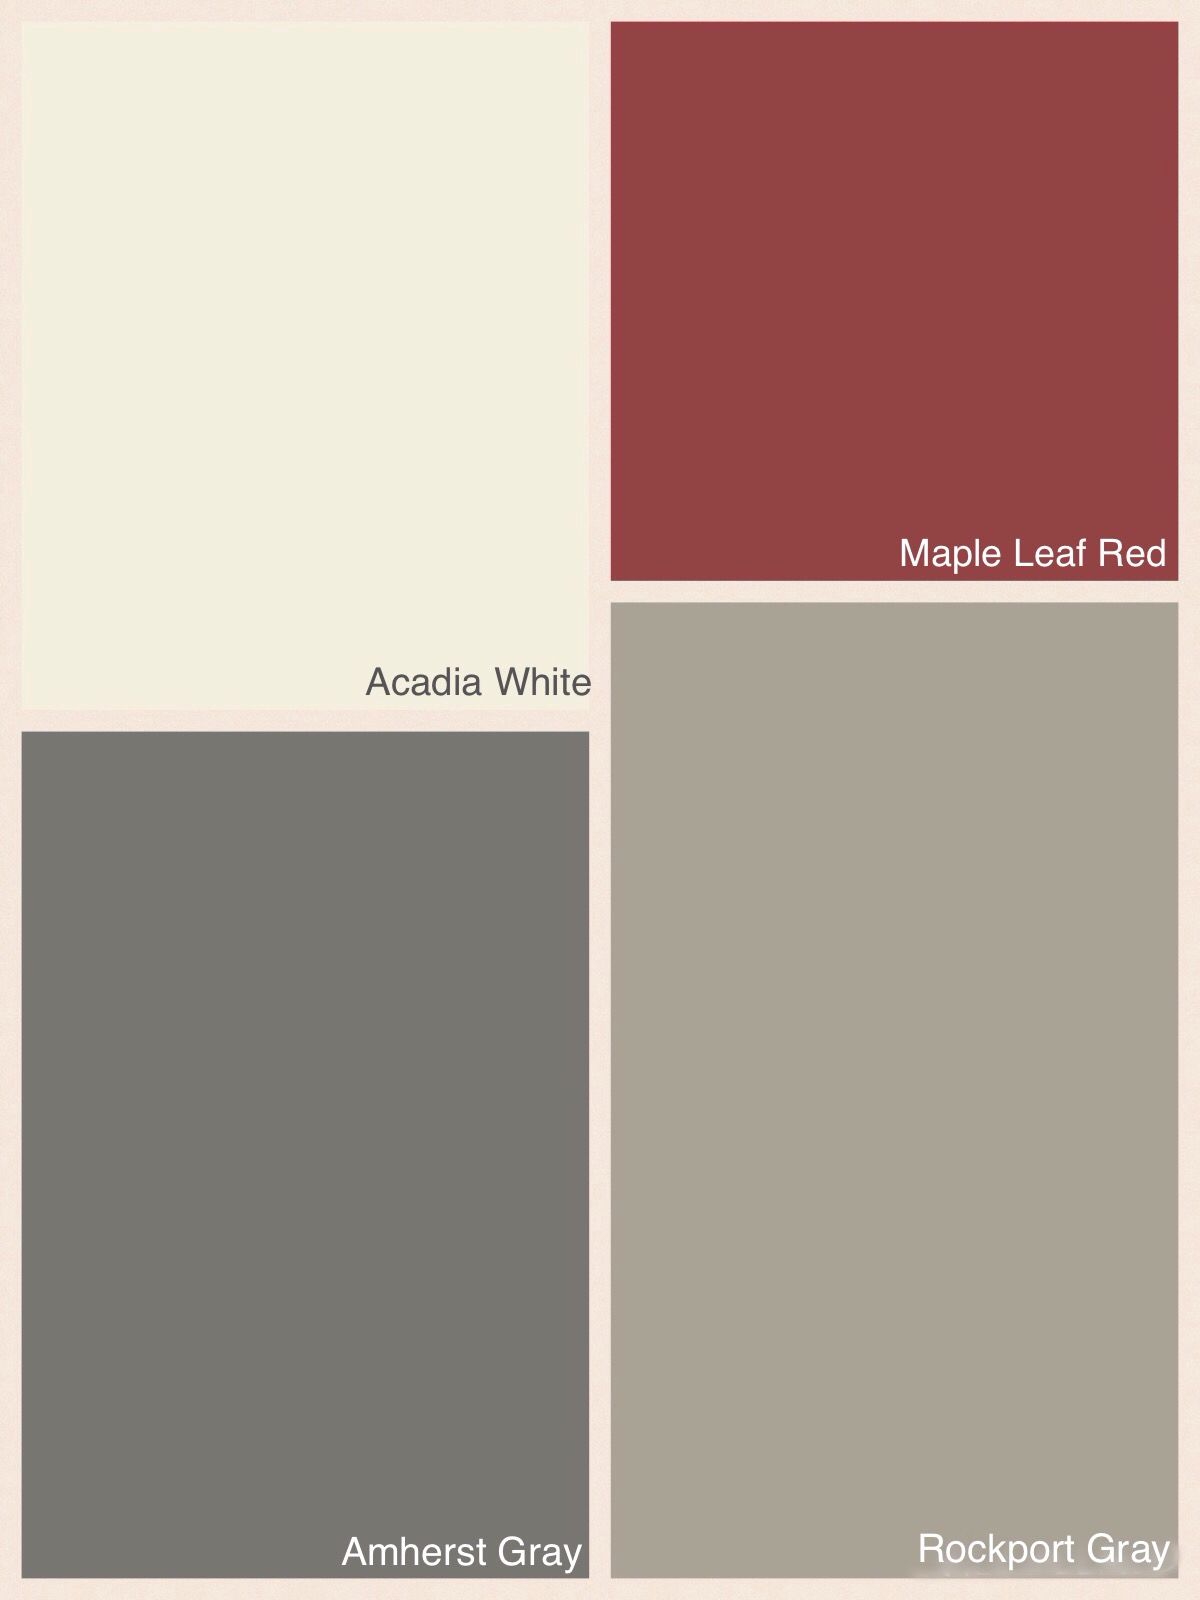 Benjamin Moore Colours For Exterior Of House Main Colour Rockport Gray Trim